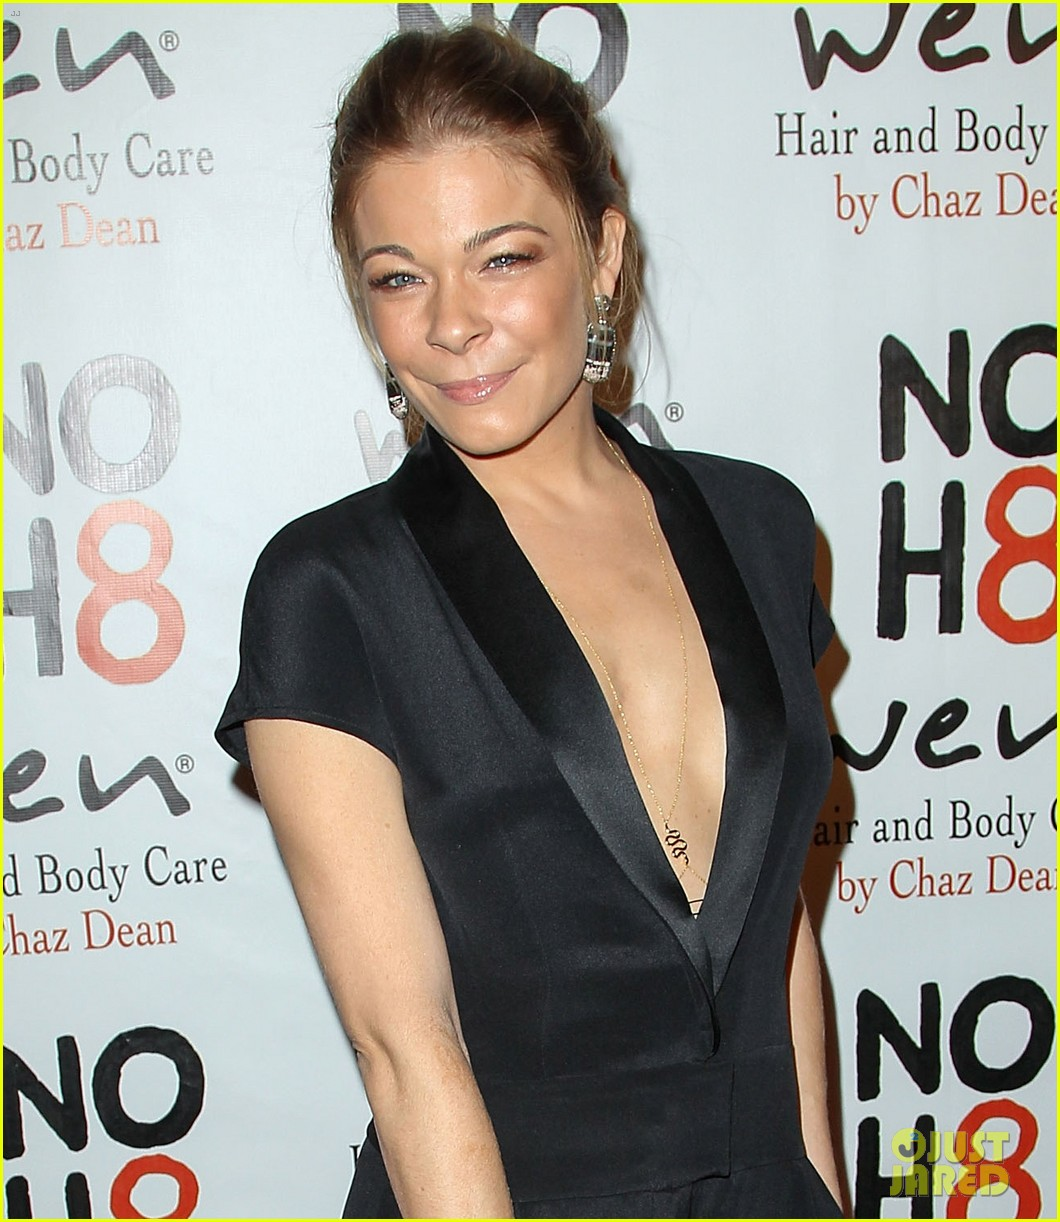 leann rimes eddie cibrian noh8 party kisses 04